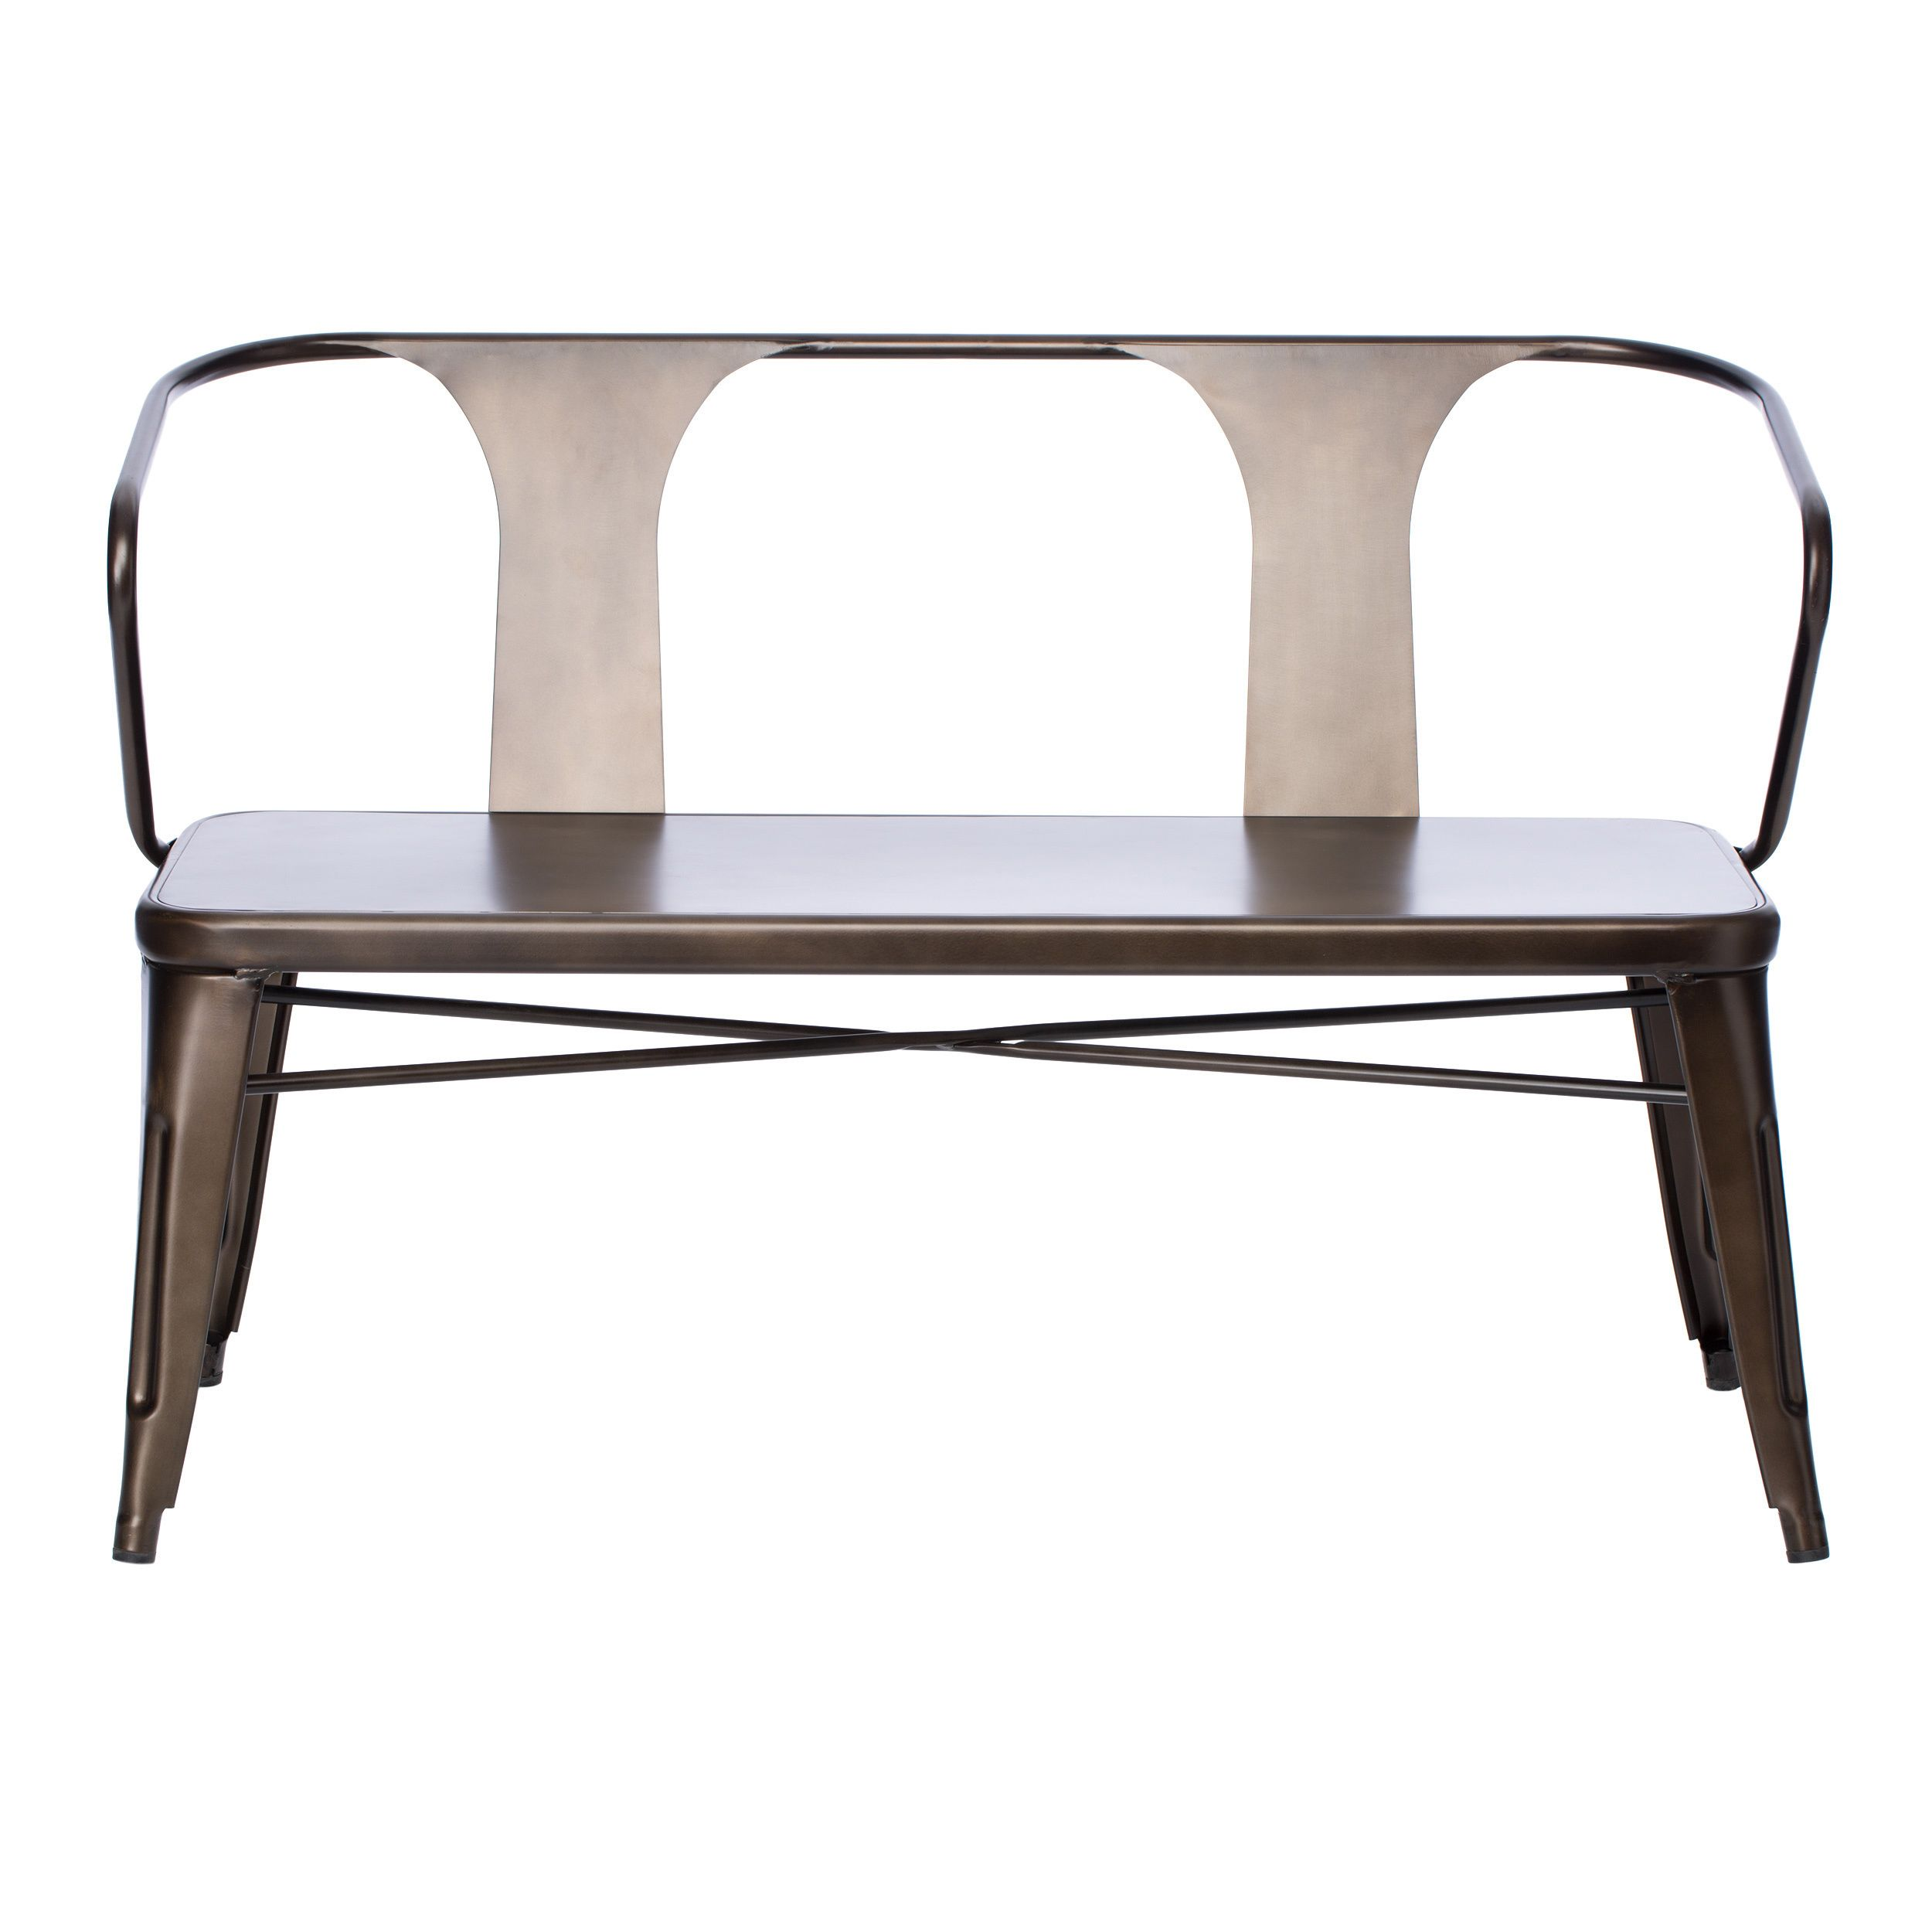 Tabouret Vintage Metal Dining Bench with Back by I Love Living ...